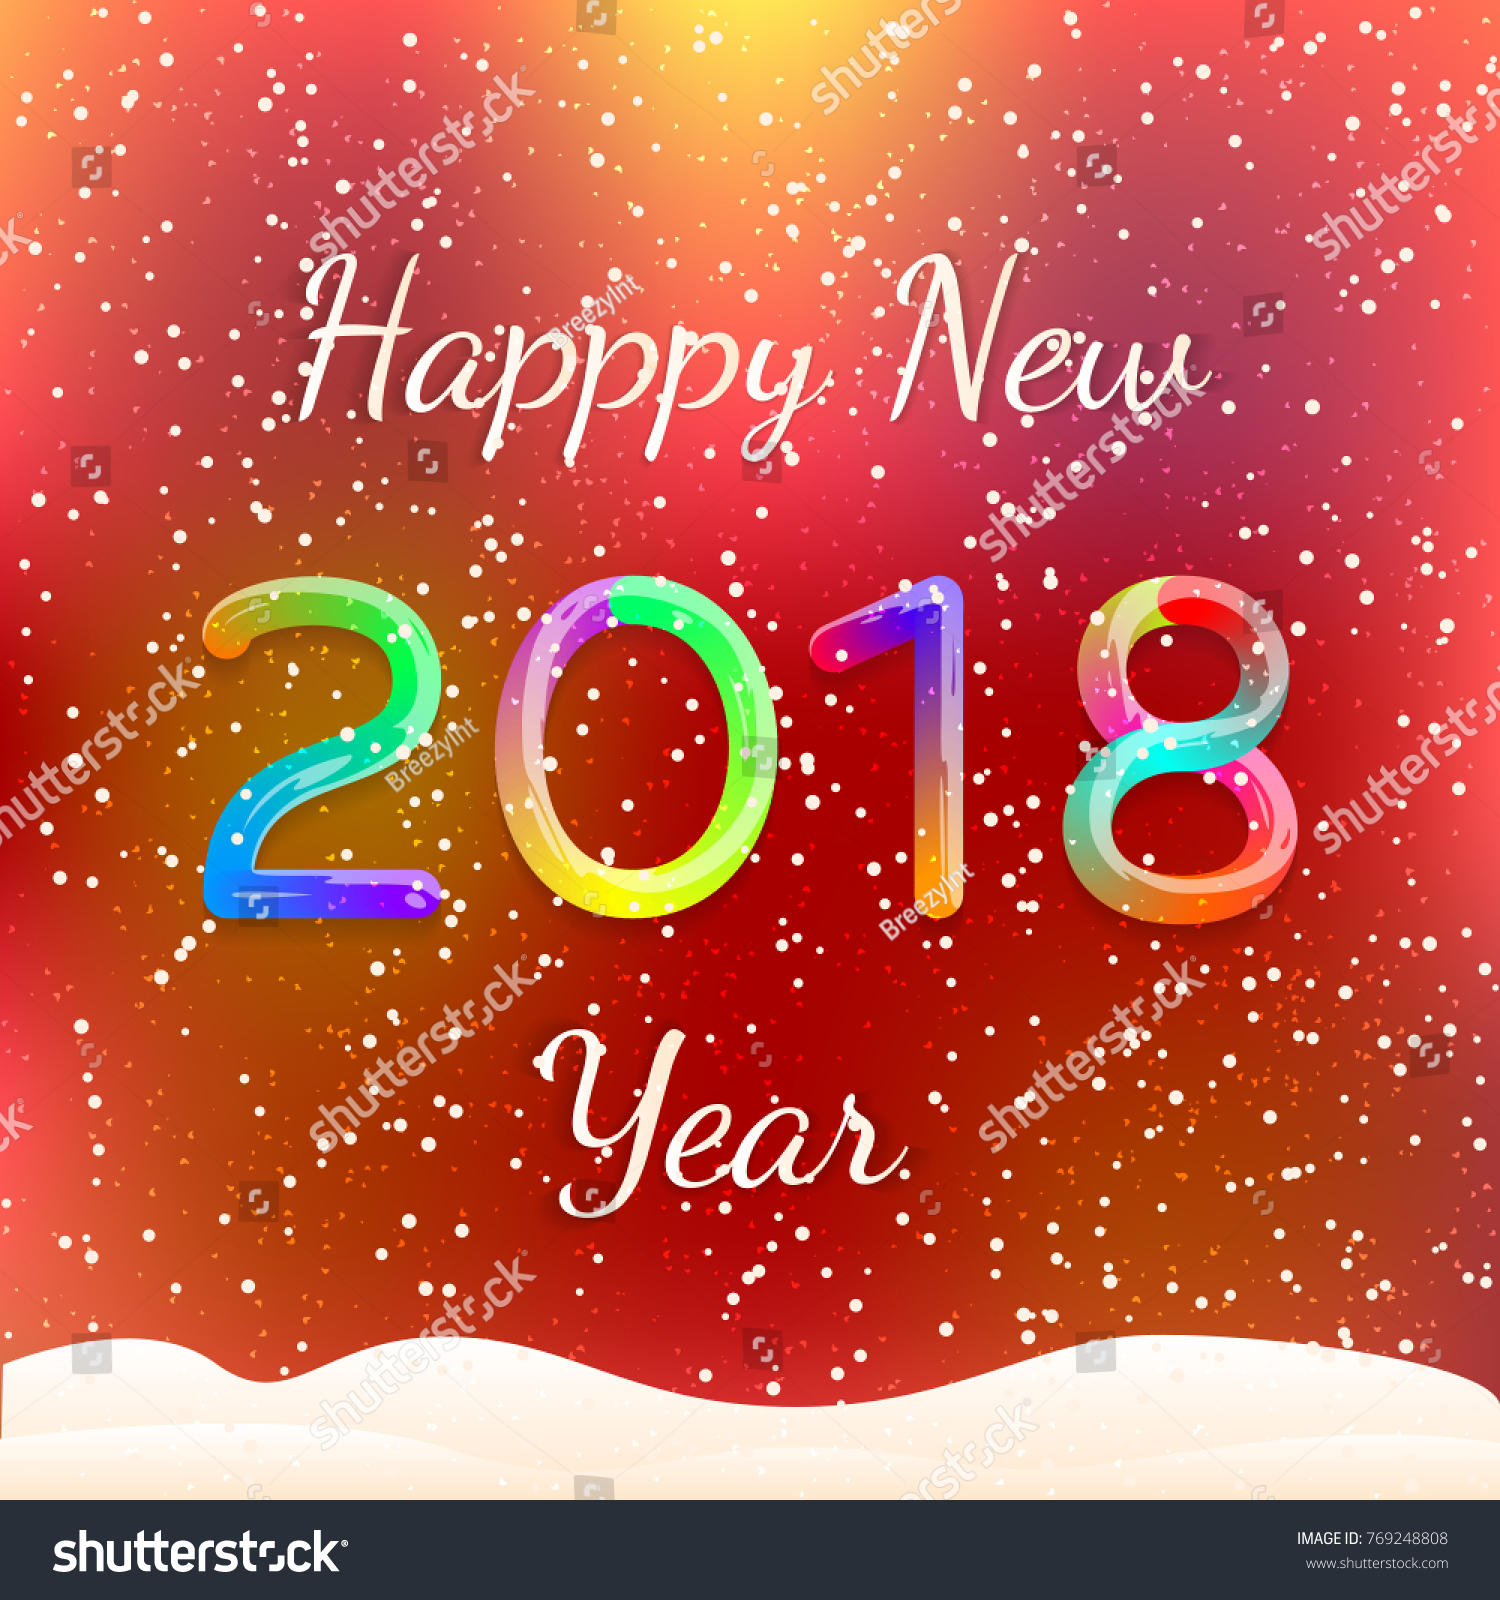 Happy New 2018 Year Colorful Greeting Stock Vector Royalty Free